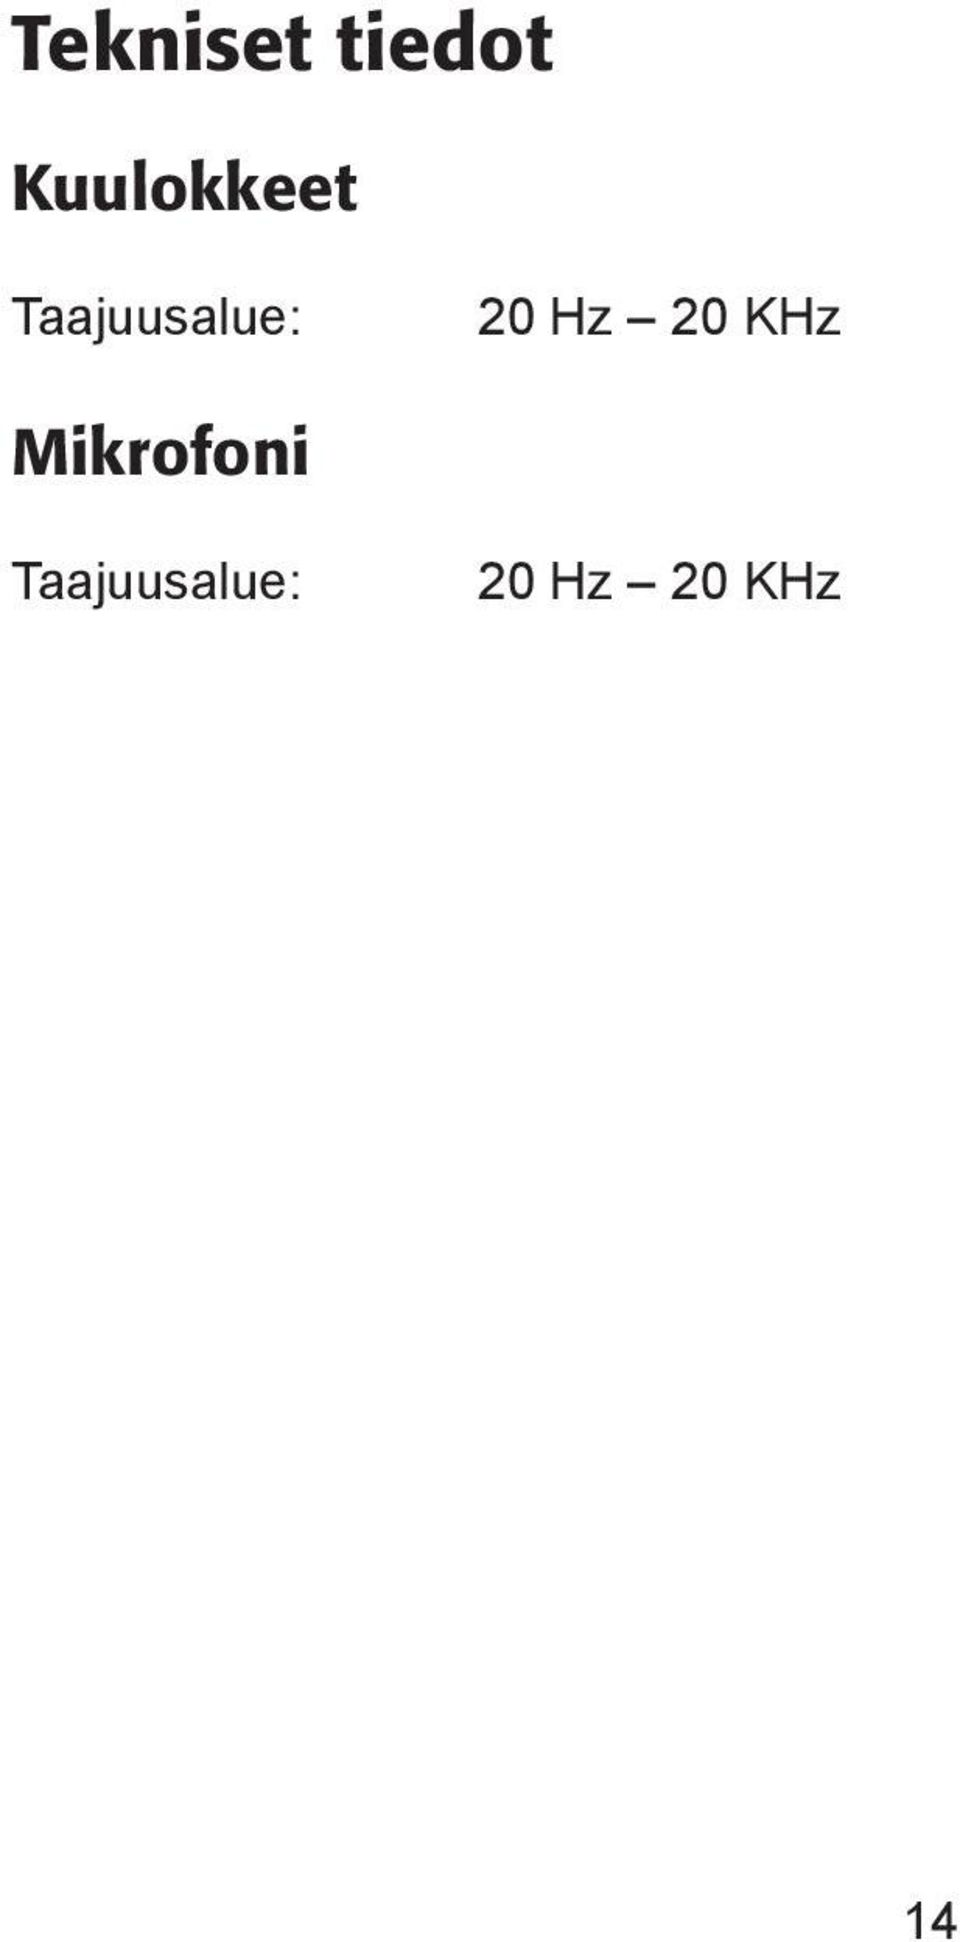 Taajuusalue: 20 Hz 20